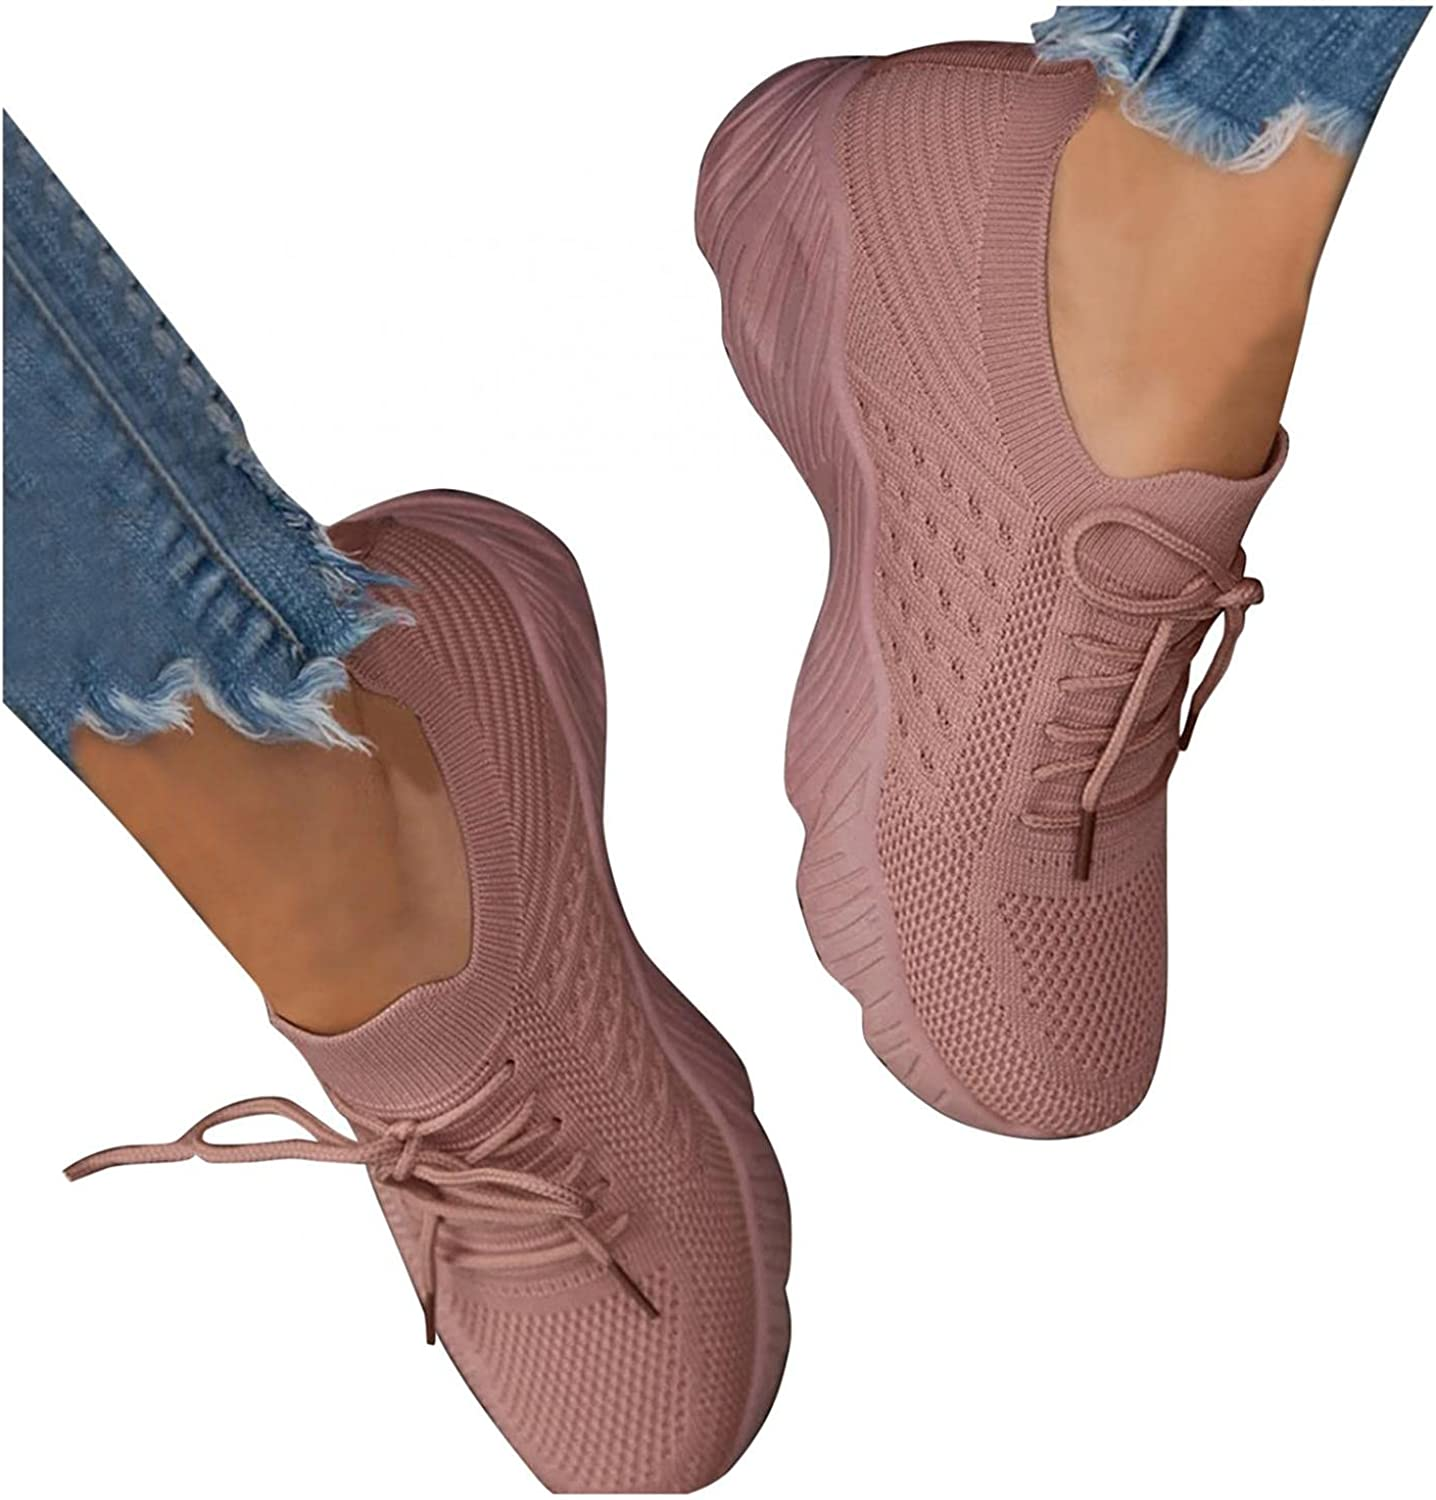 Zieglen Womens Sneakers Woven Deep Mouth Casual Shoes Ru Special Max 60% OFF price for a limited time Walking